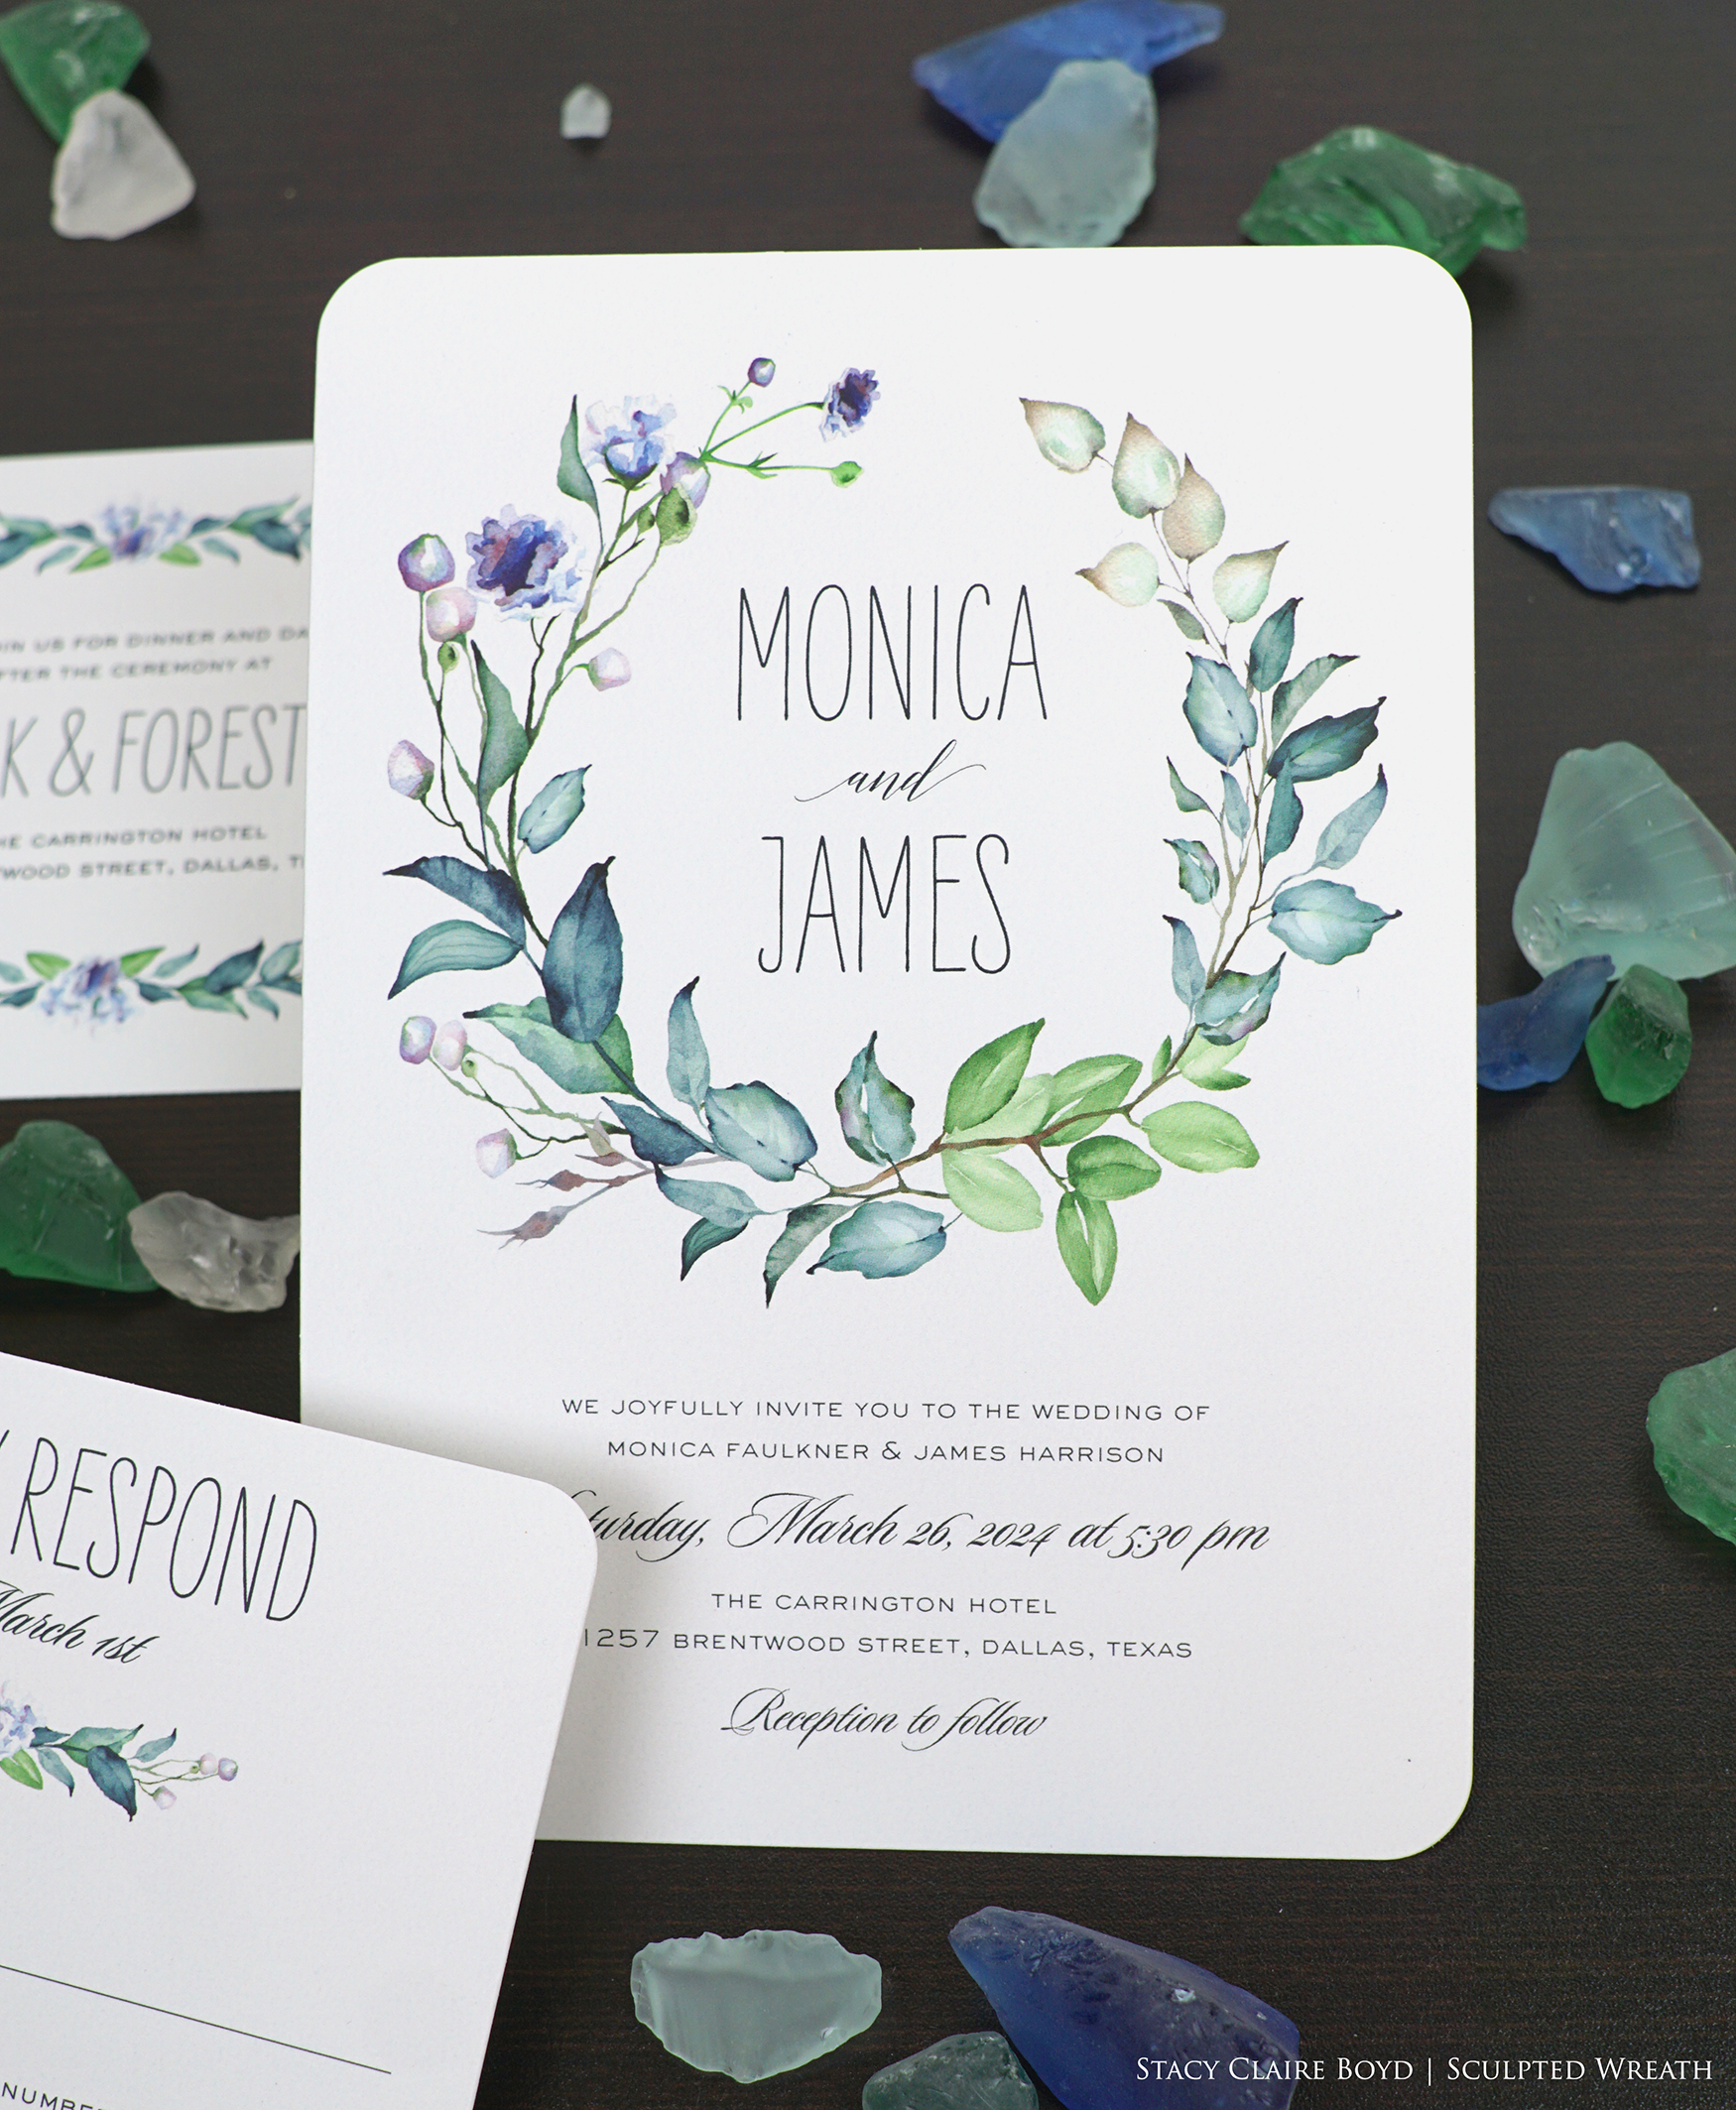 Sculpted Wreath wedding invitation features beautiful dusty blues, greens, and purples